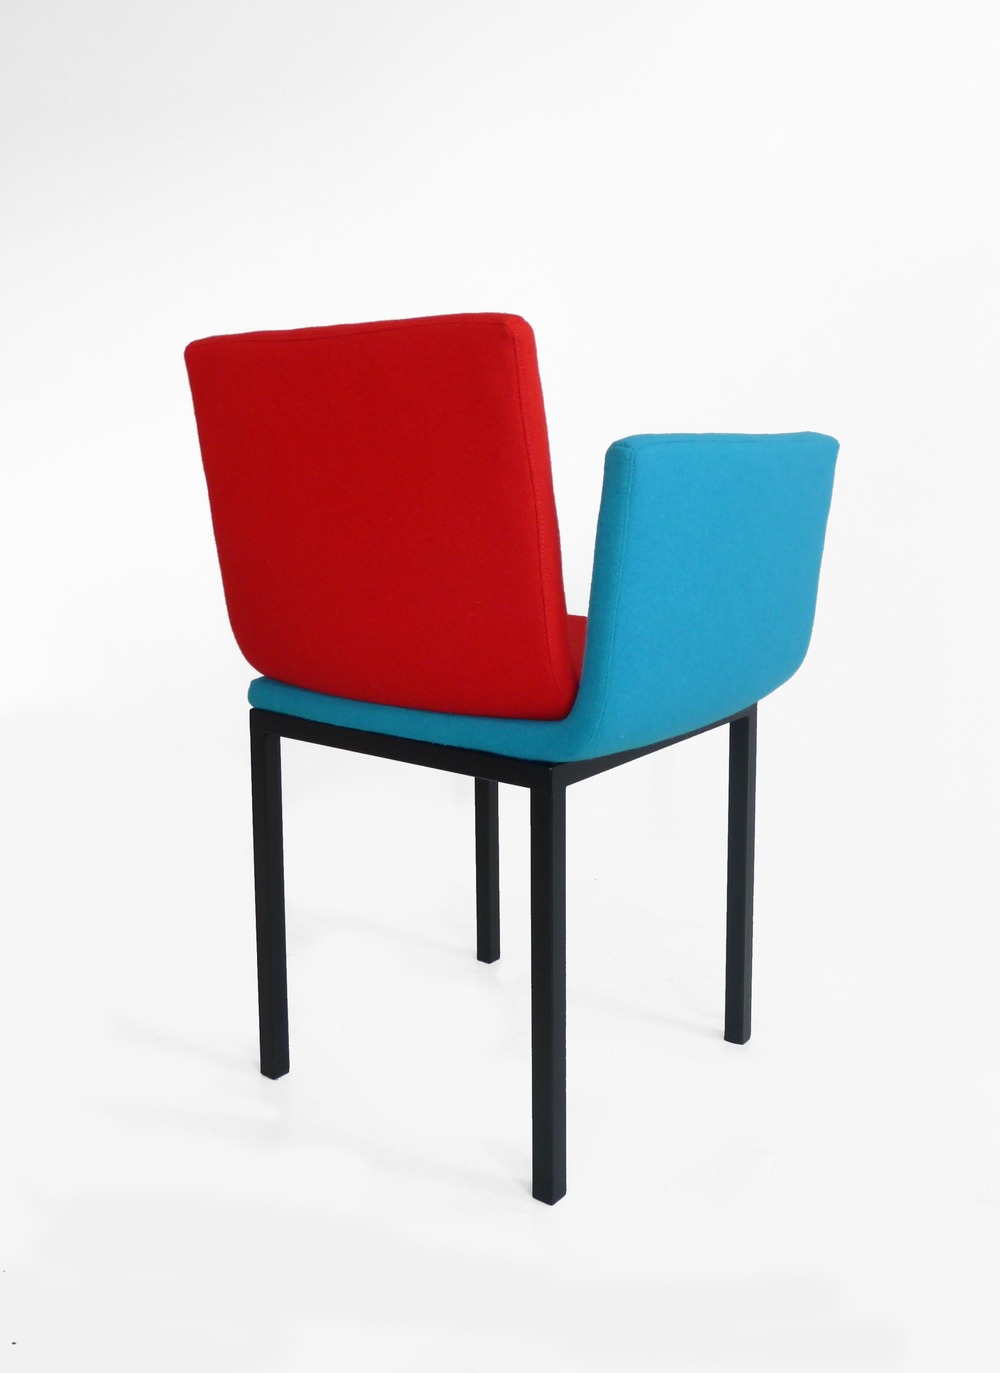 red blue chair 2.jpg